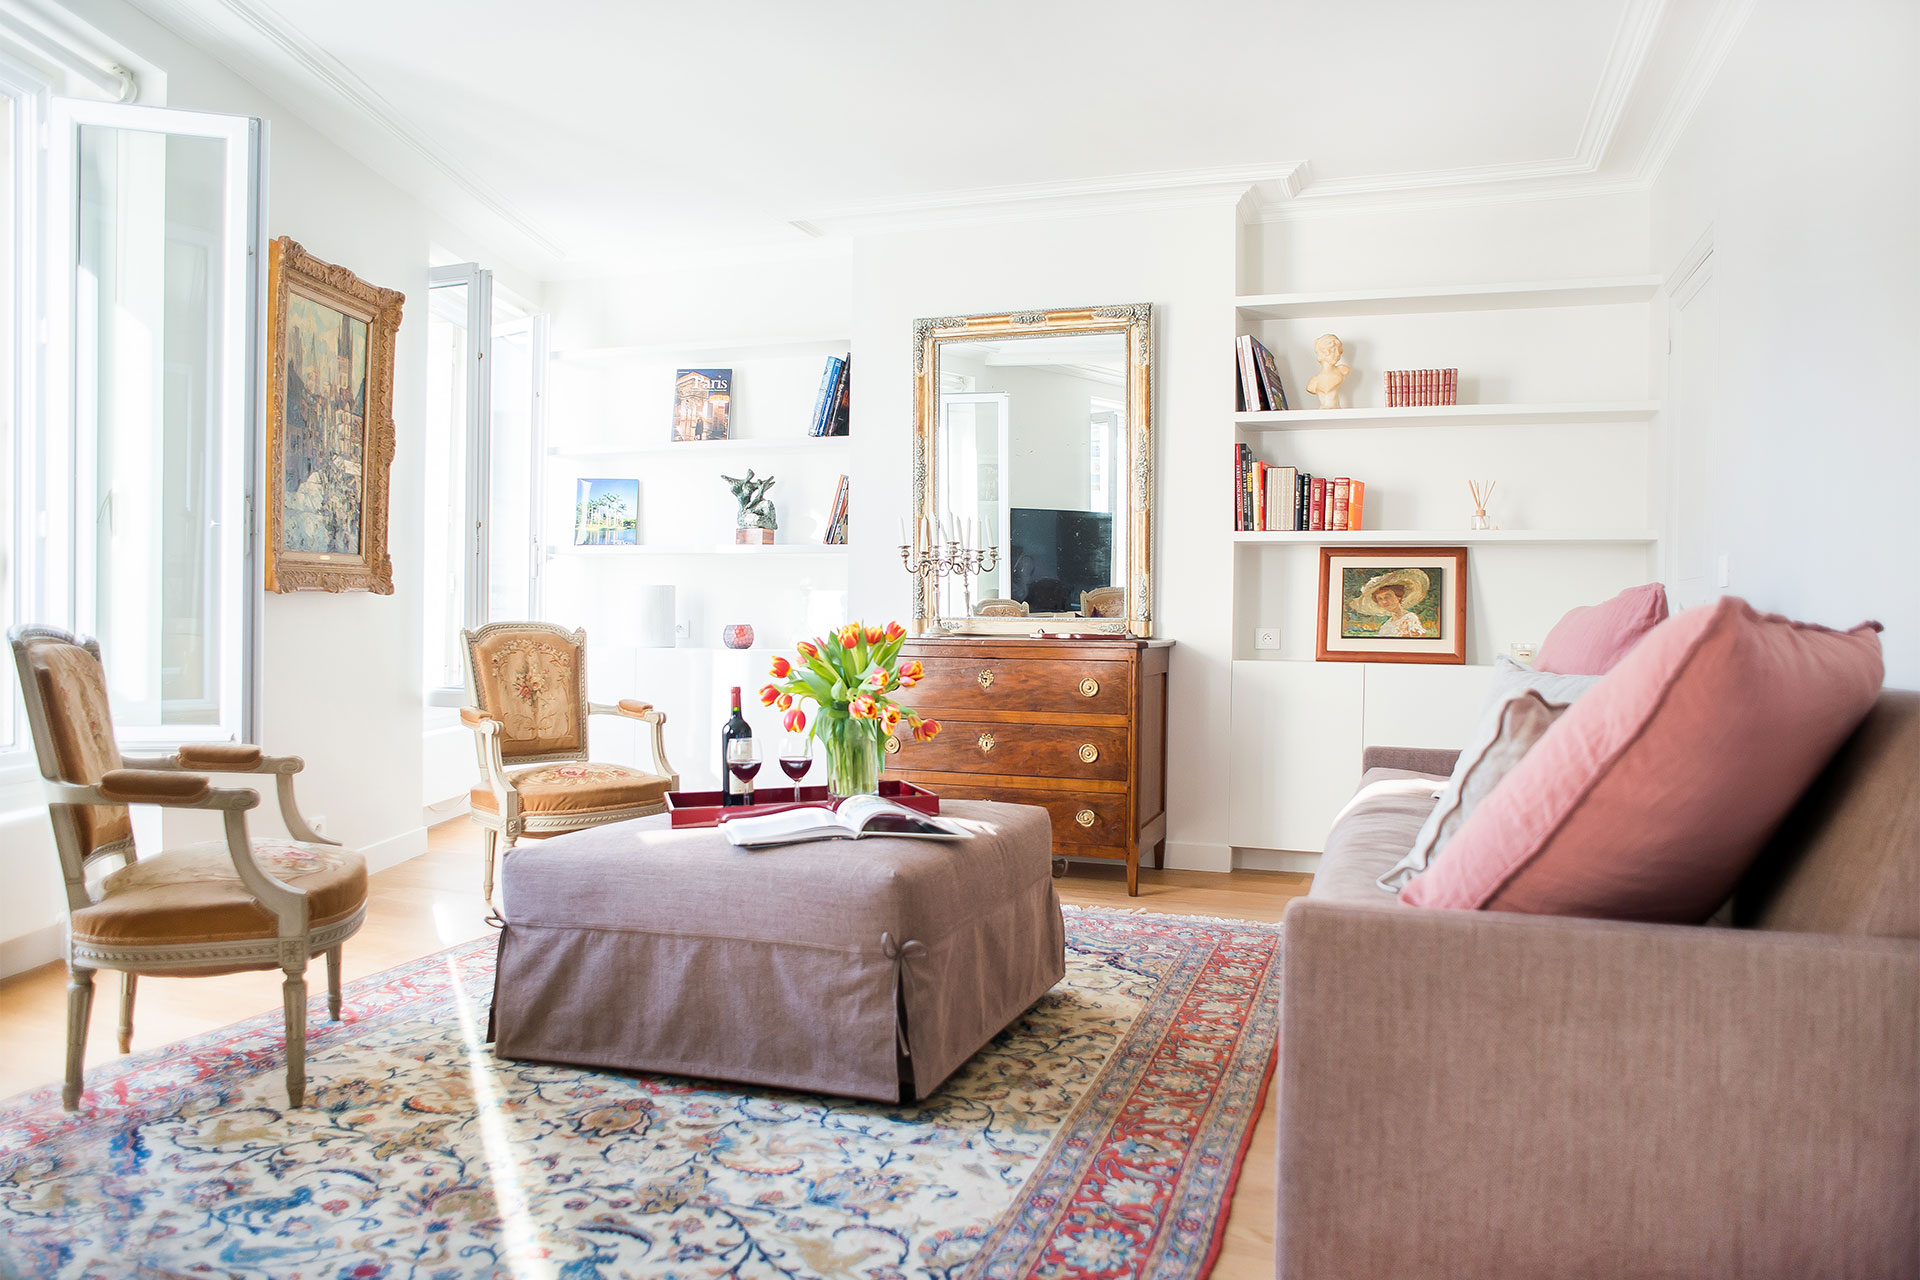 Welcome to the elegant Saint-Bris Paris rental offered by Paris Perfect